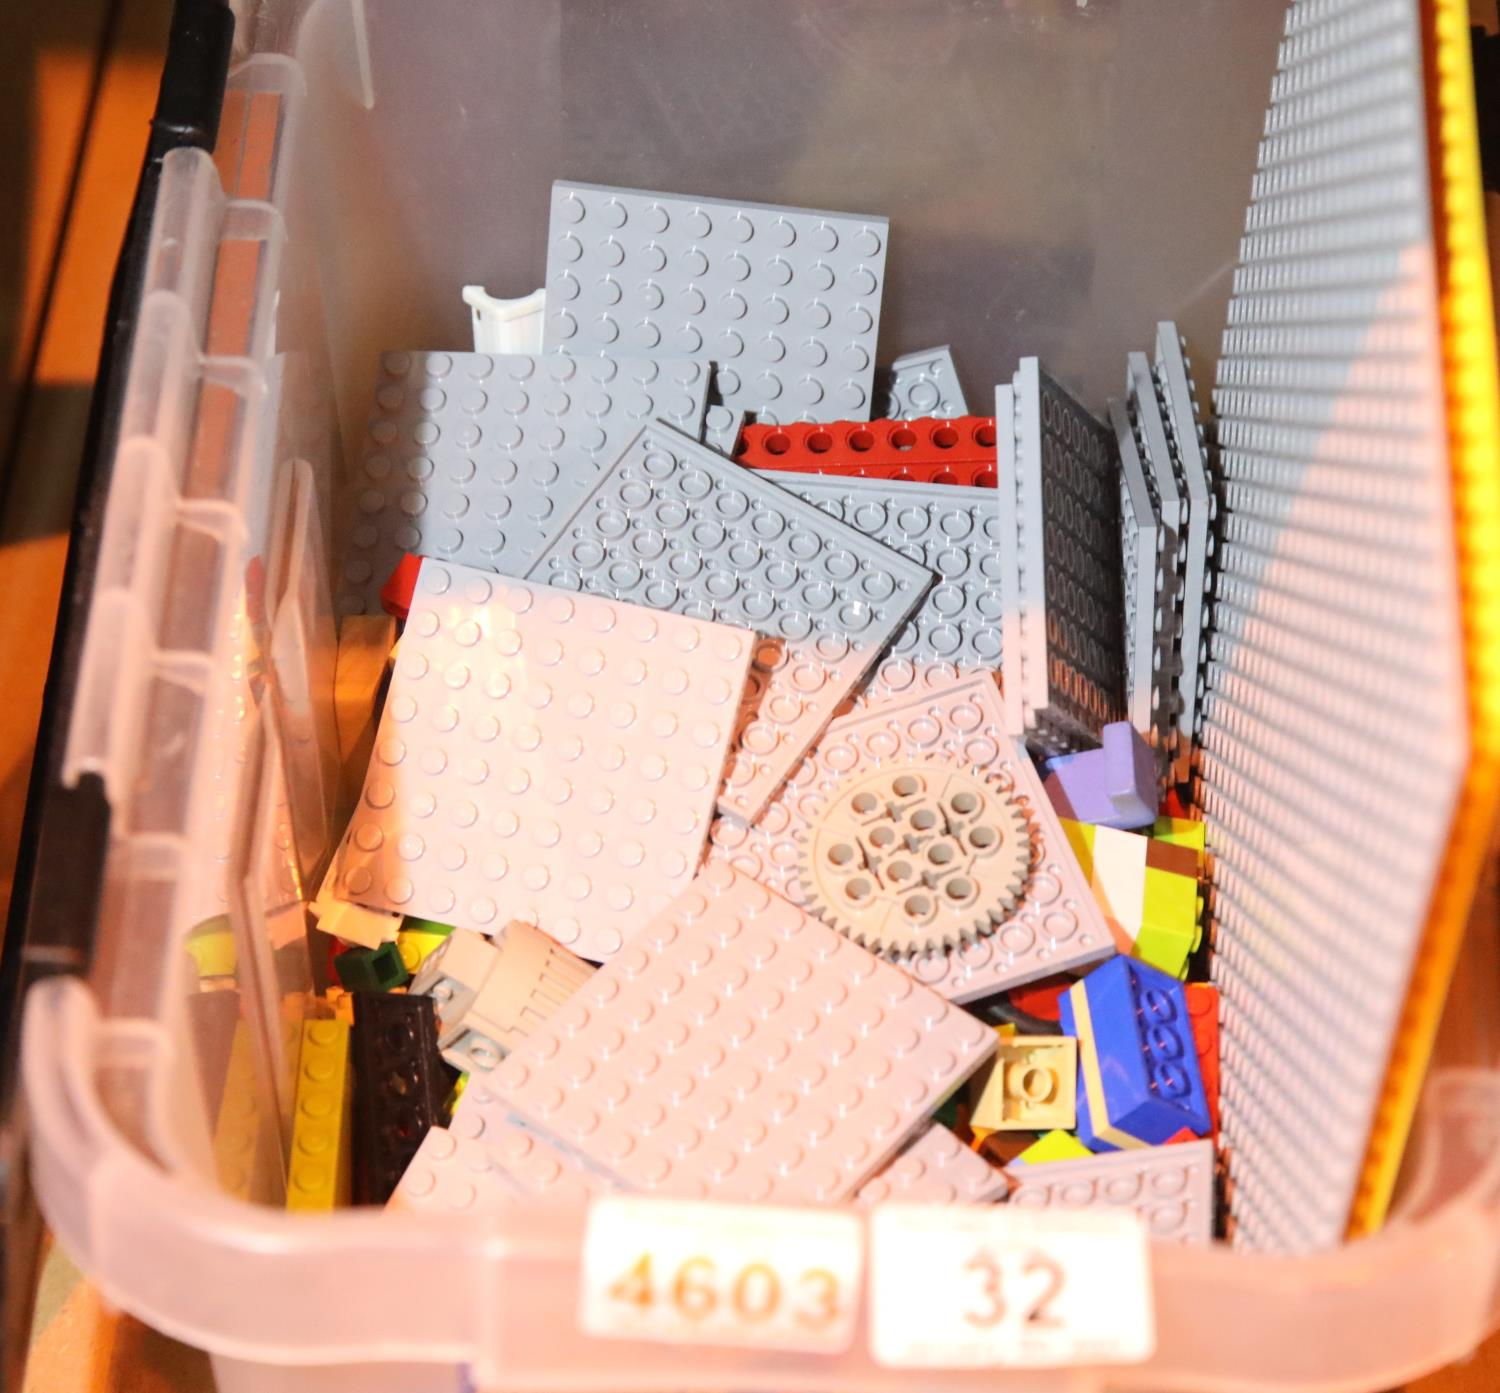 Box of mixed Lego type building blocks. Not available for in-house P&P